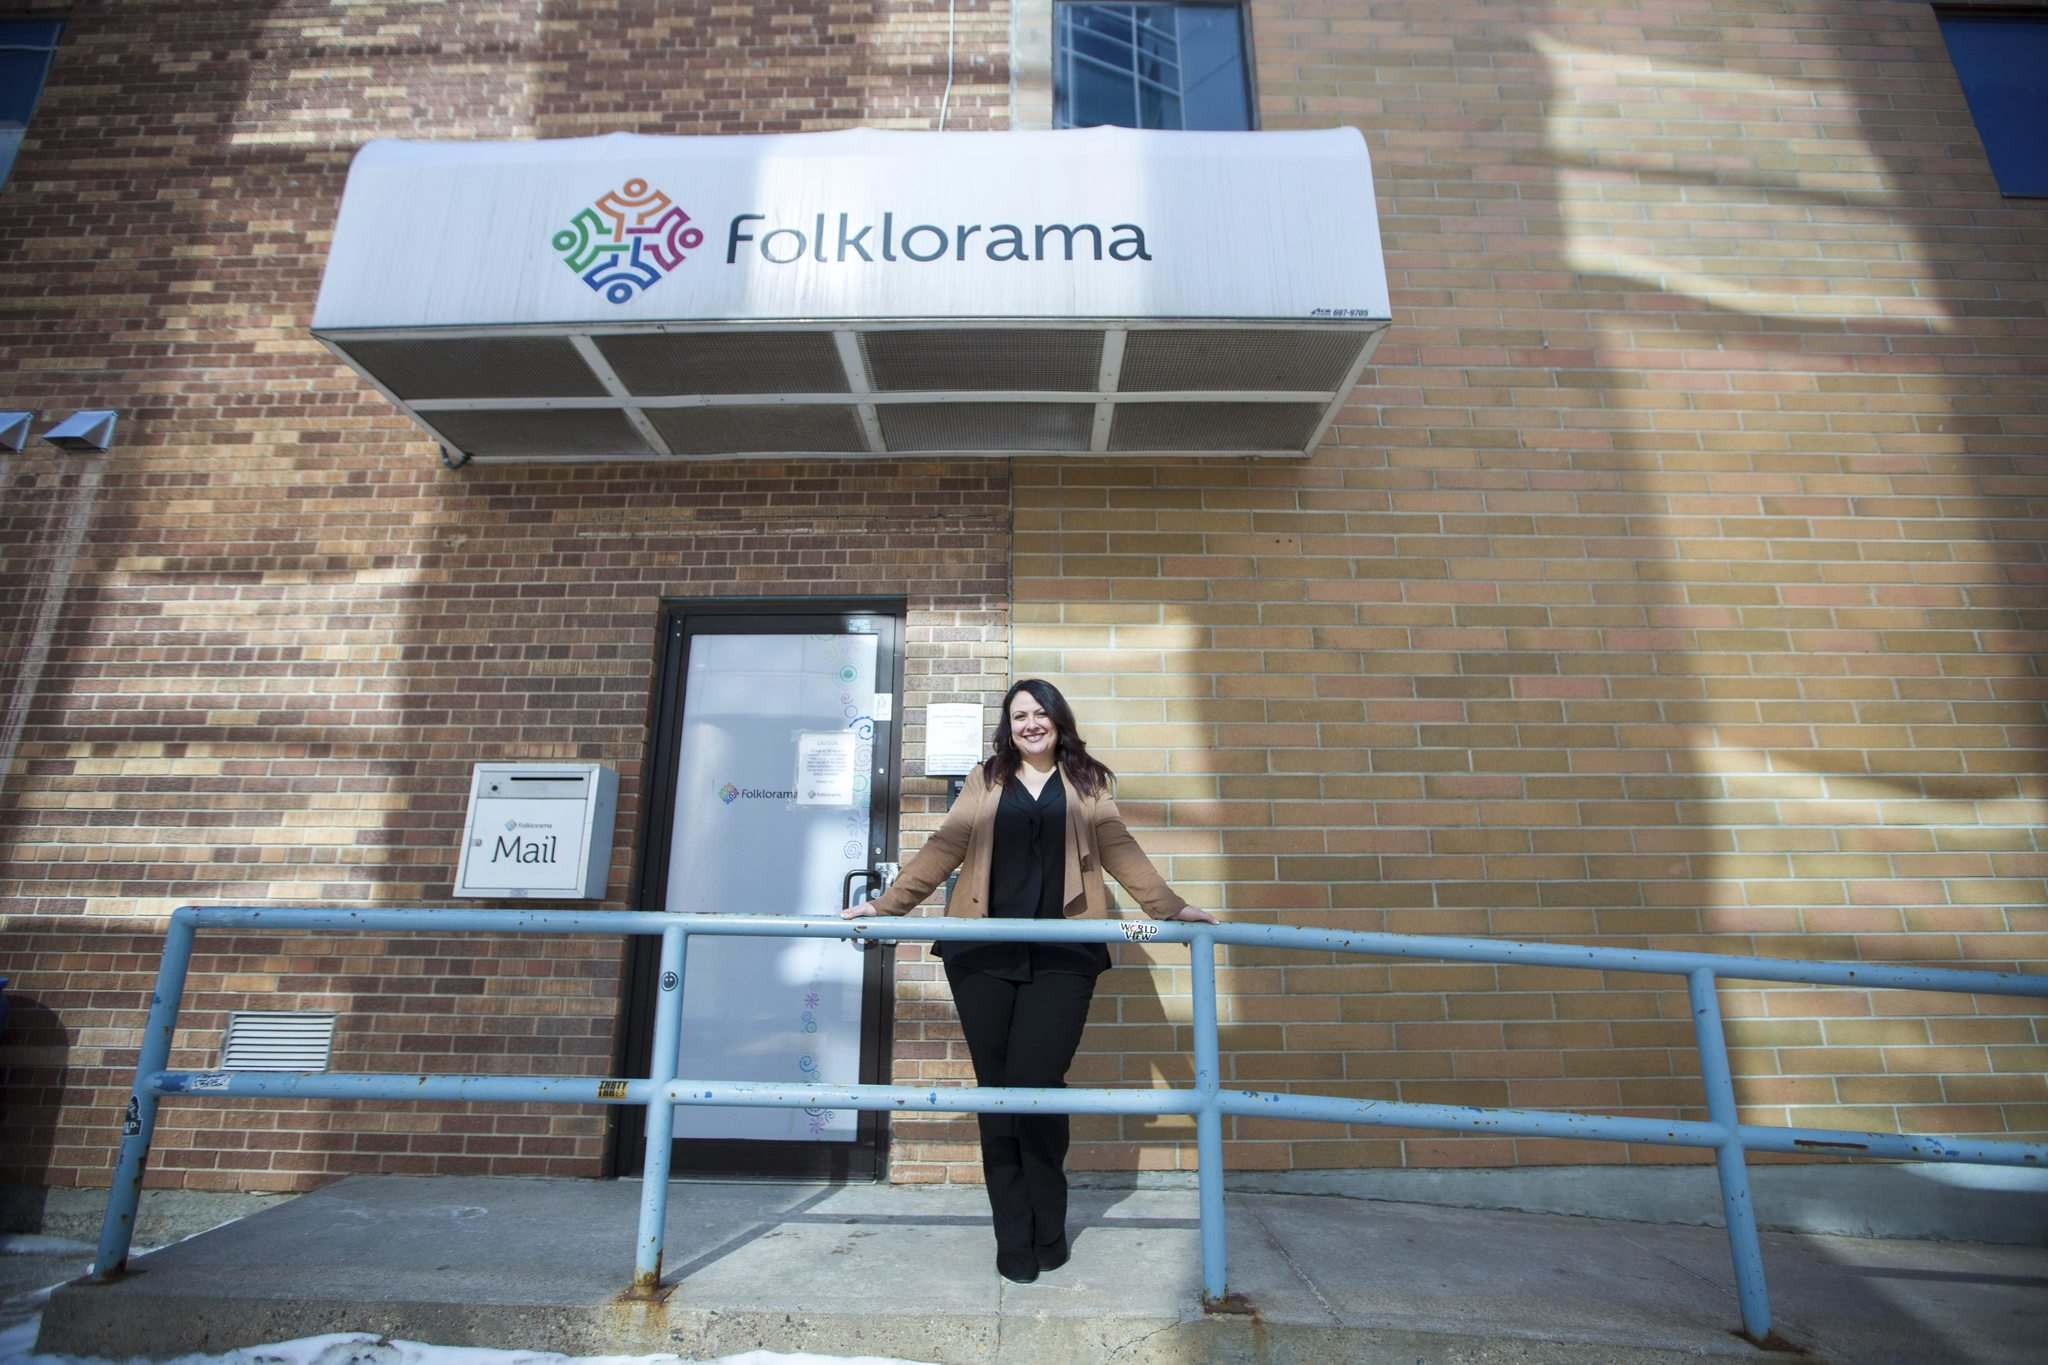 Folklorama is the largest and longest-running multicultural festival of its kind in the world. Last year's two-week run in August saw about 445,000 visits to the festival's 43 pavilions, Cotroneo said. (Mikaela Mackenzie / Winnipeg Free Press)